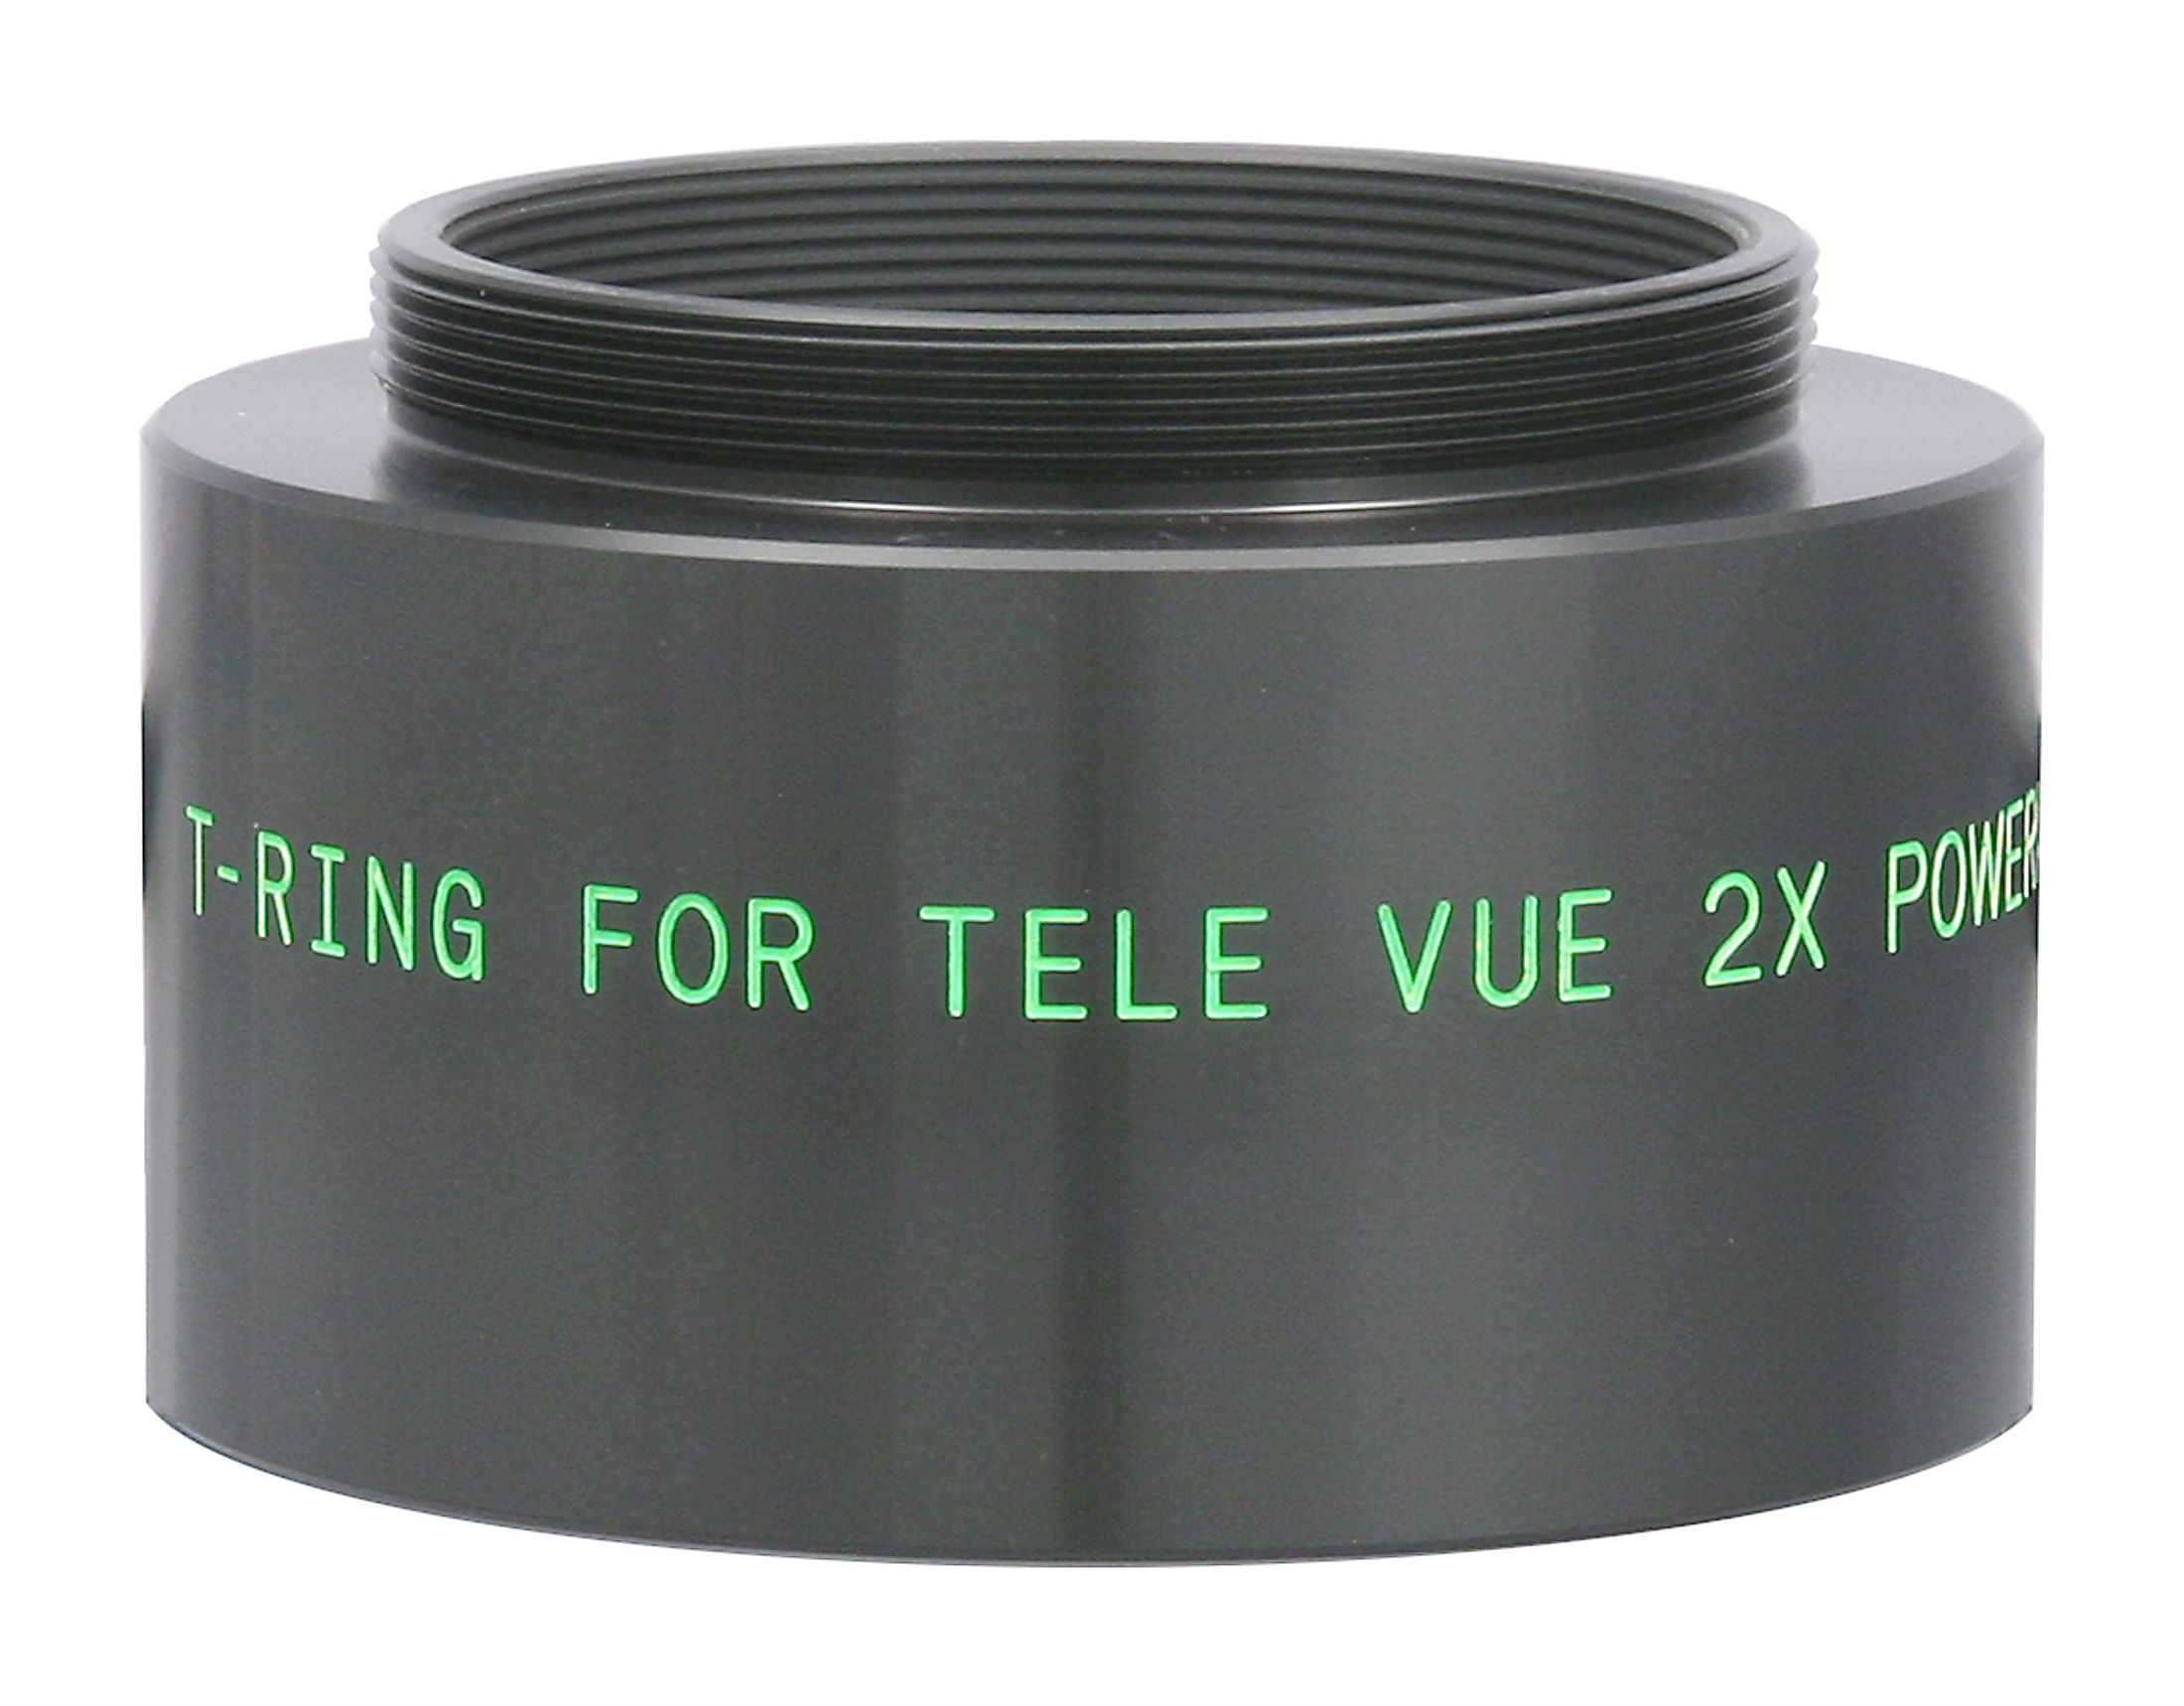 Tele Vue 2x 2'' Powermate T-Ring Adapter